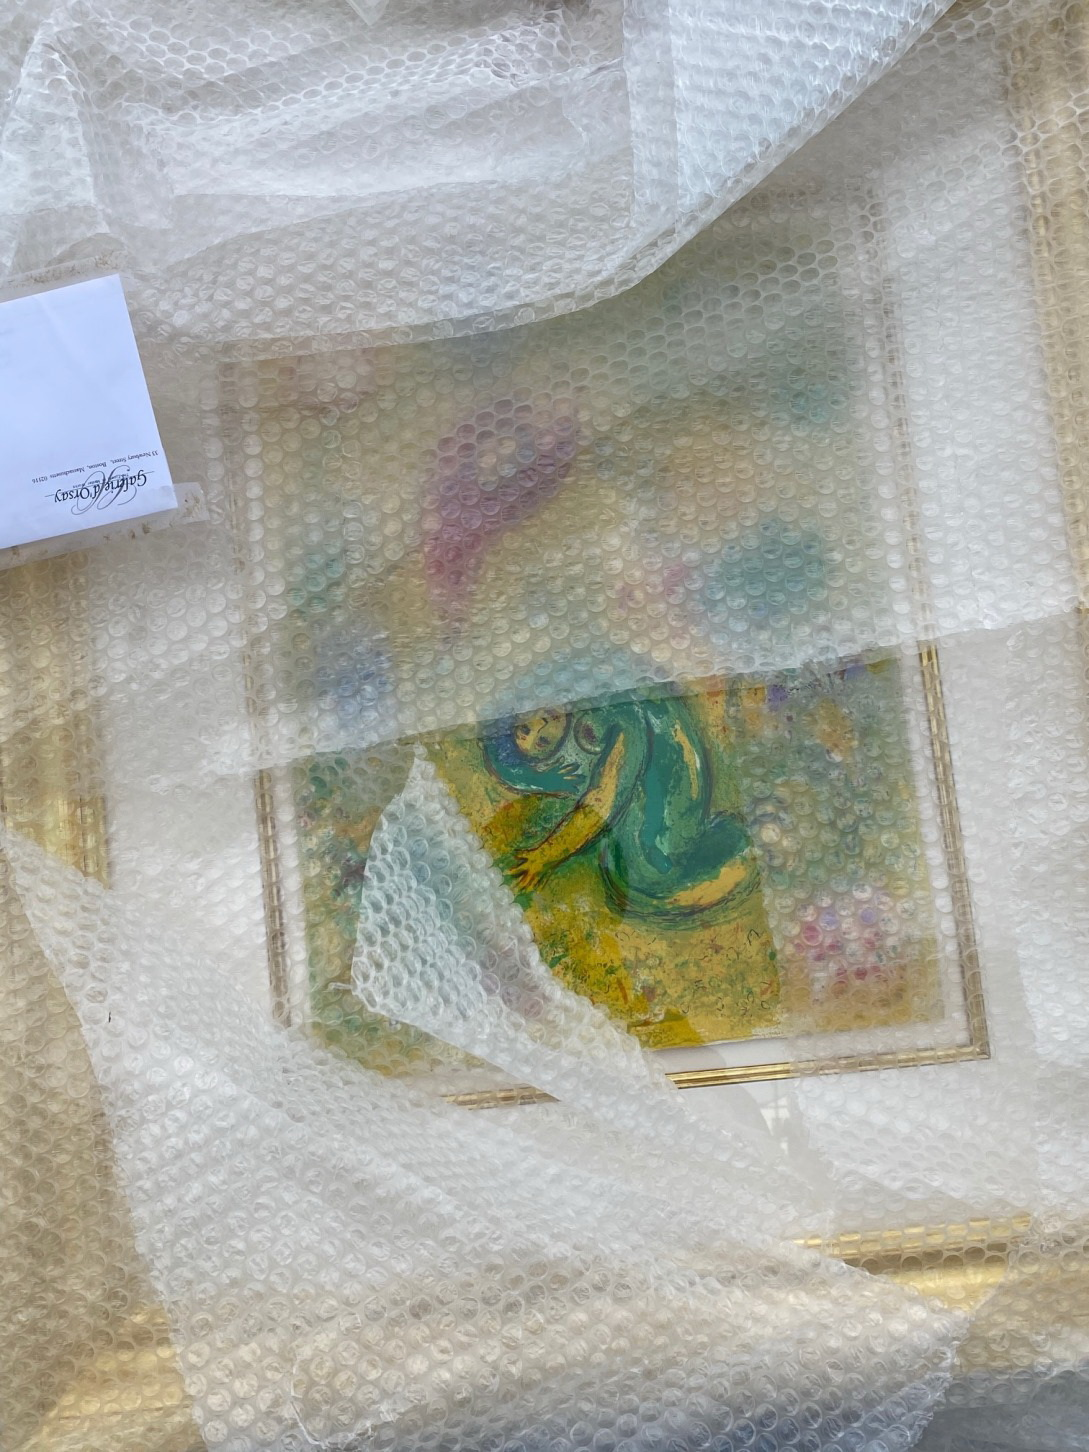 Shipping a Painting by Marc Chagall to Boise, Idaho